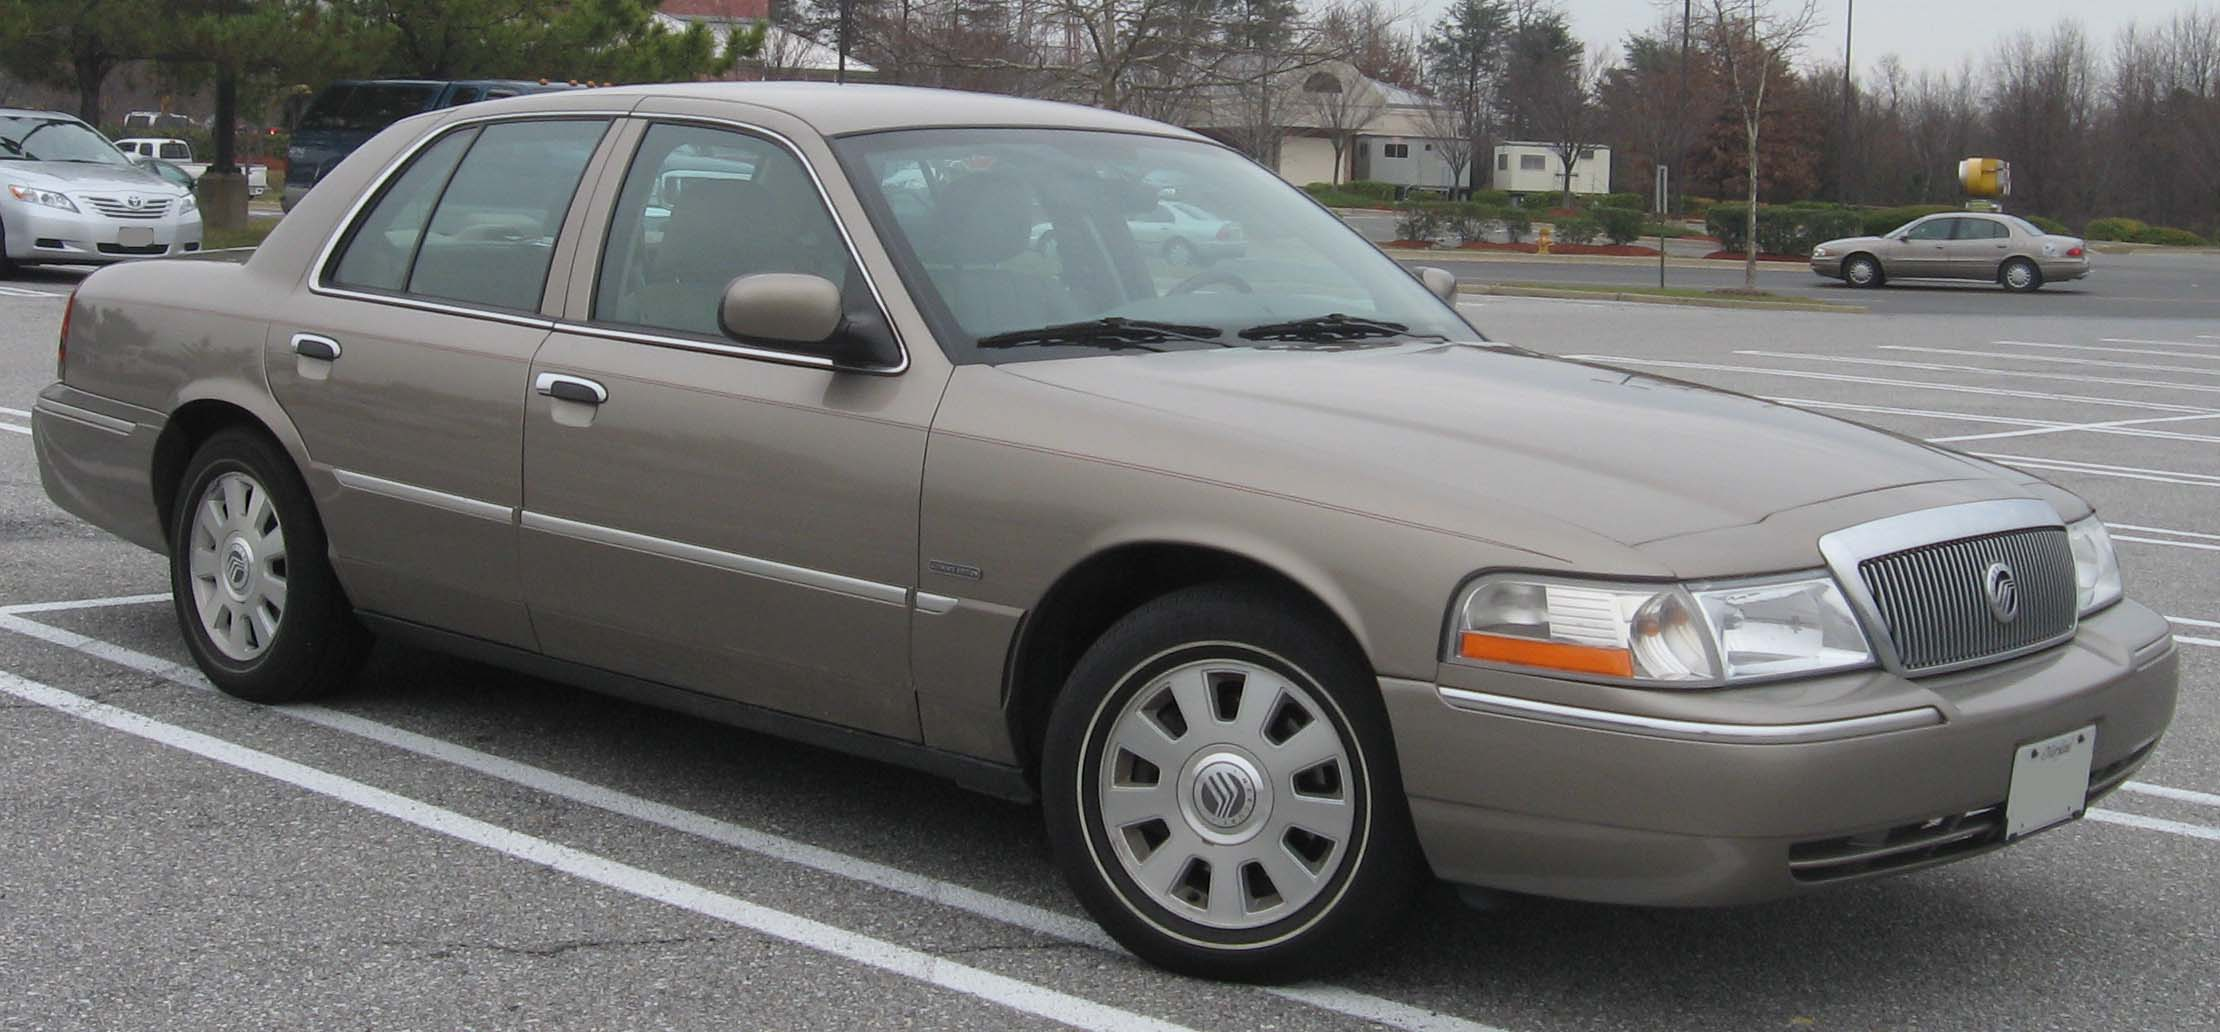 2003 Mercury Grand Marquis Information And Photos